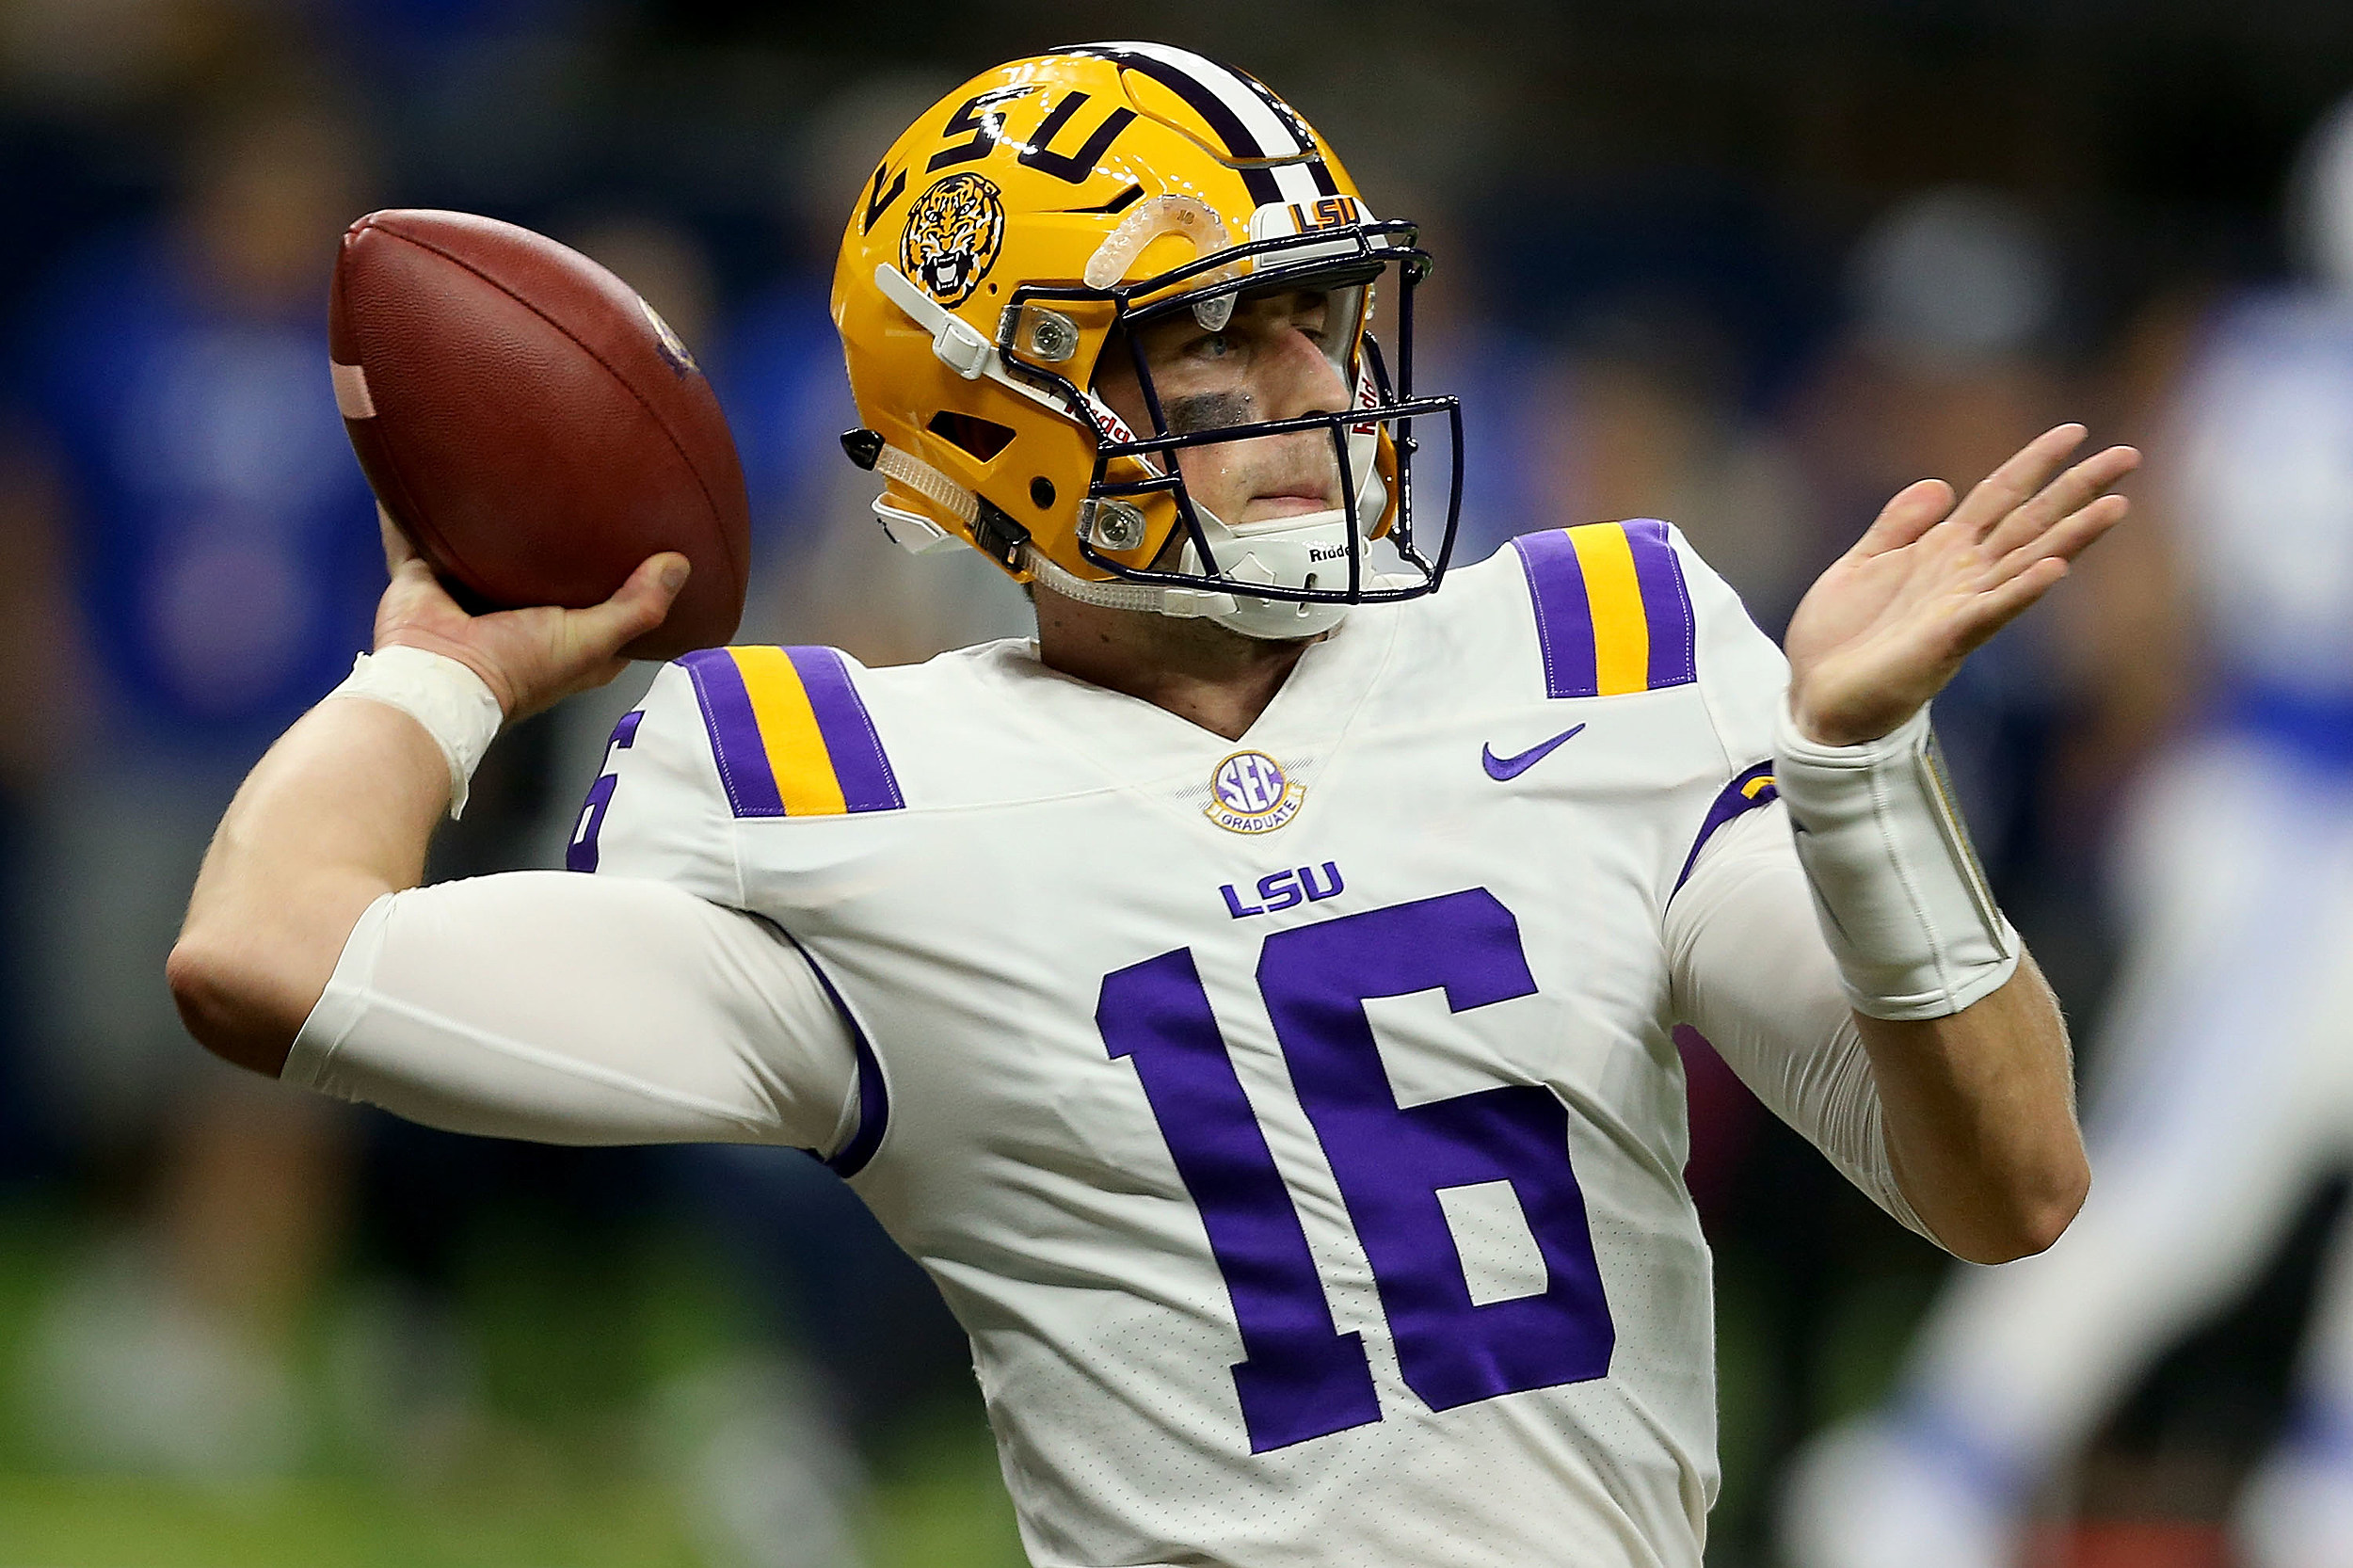 LSU Football QB Danny Etling (Getty Images)